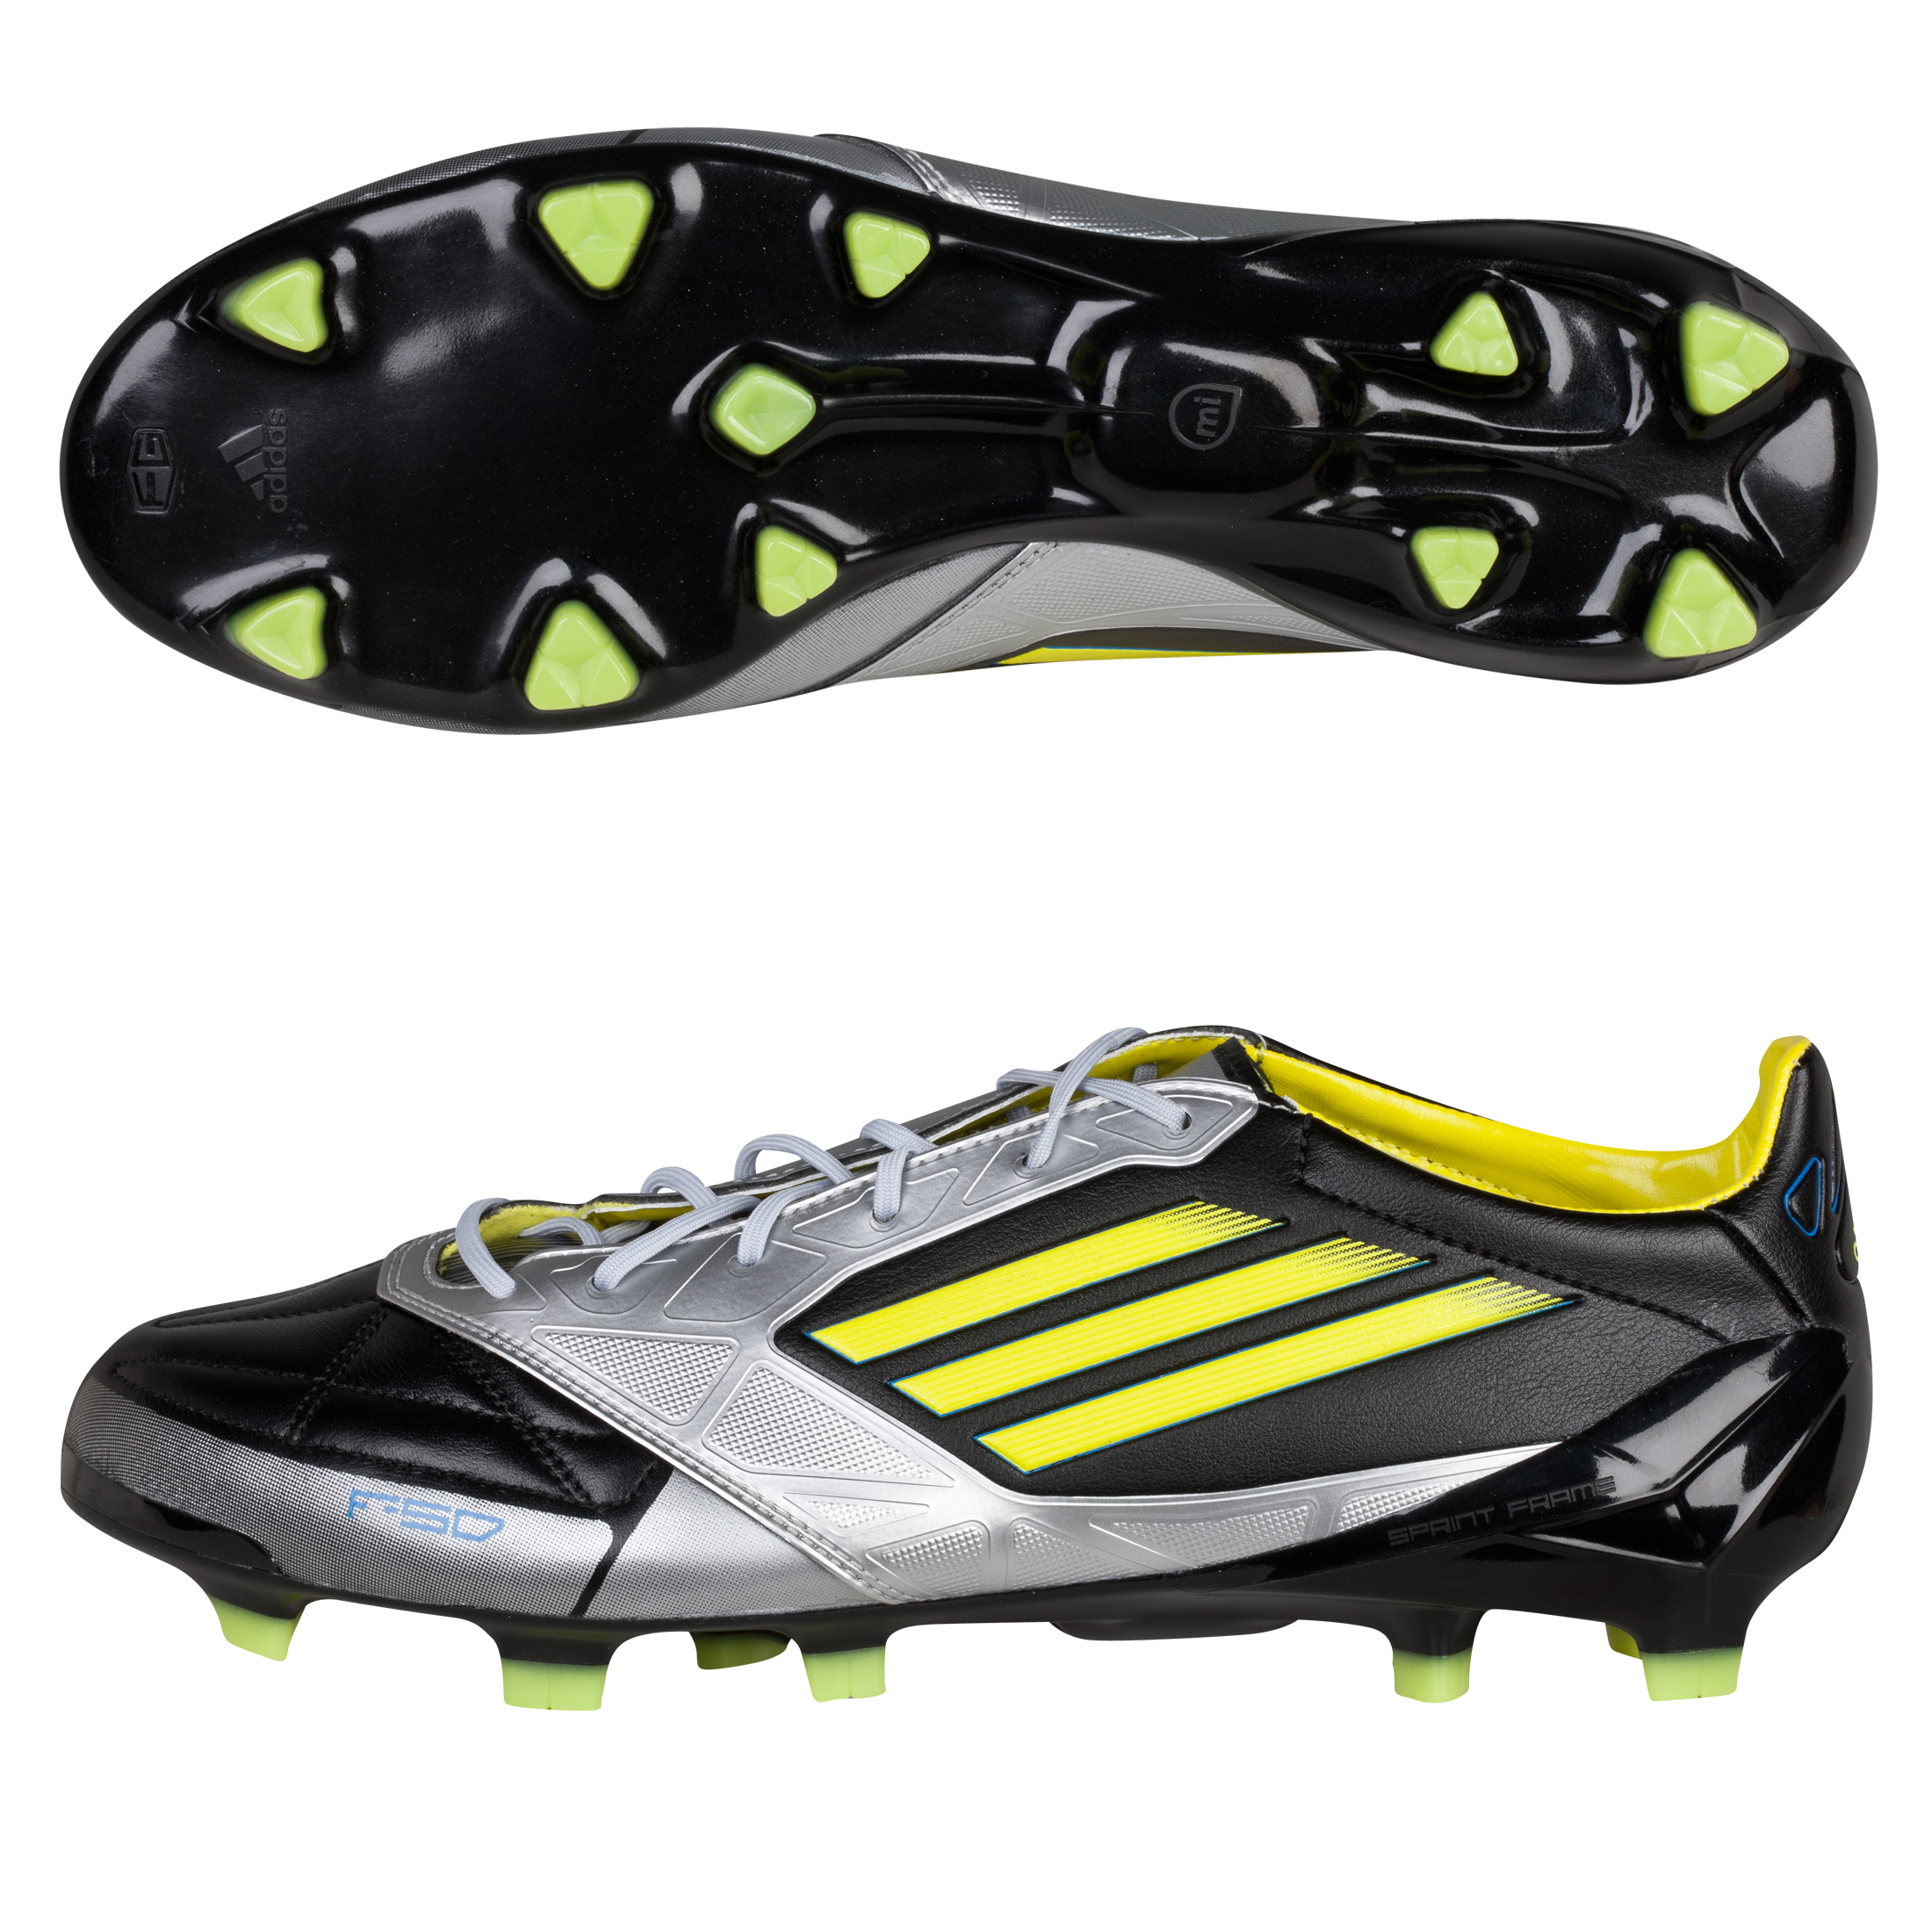 F50 Adizero TRX FG Leather Black/Lab Lime/Metallic Silver